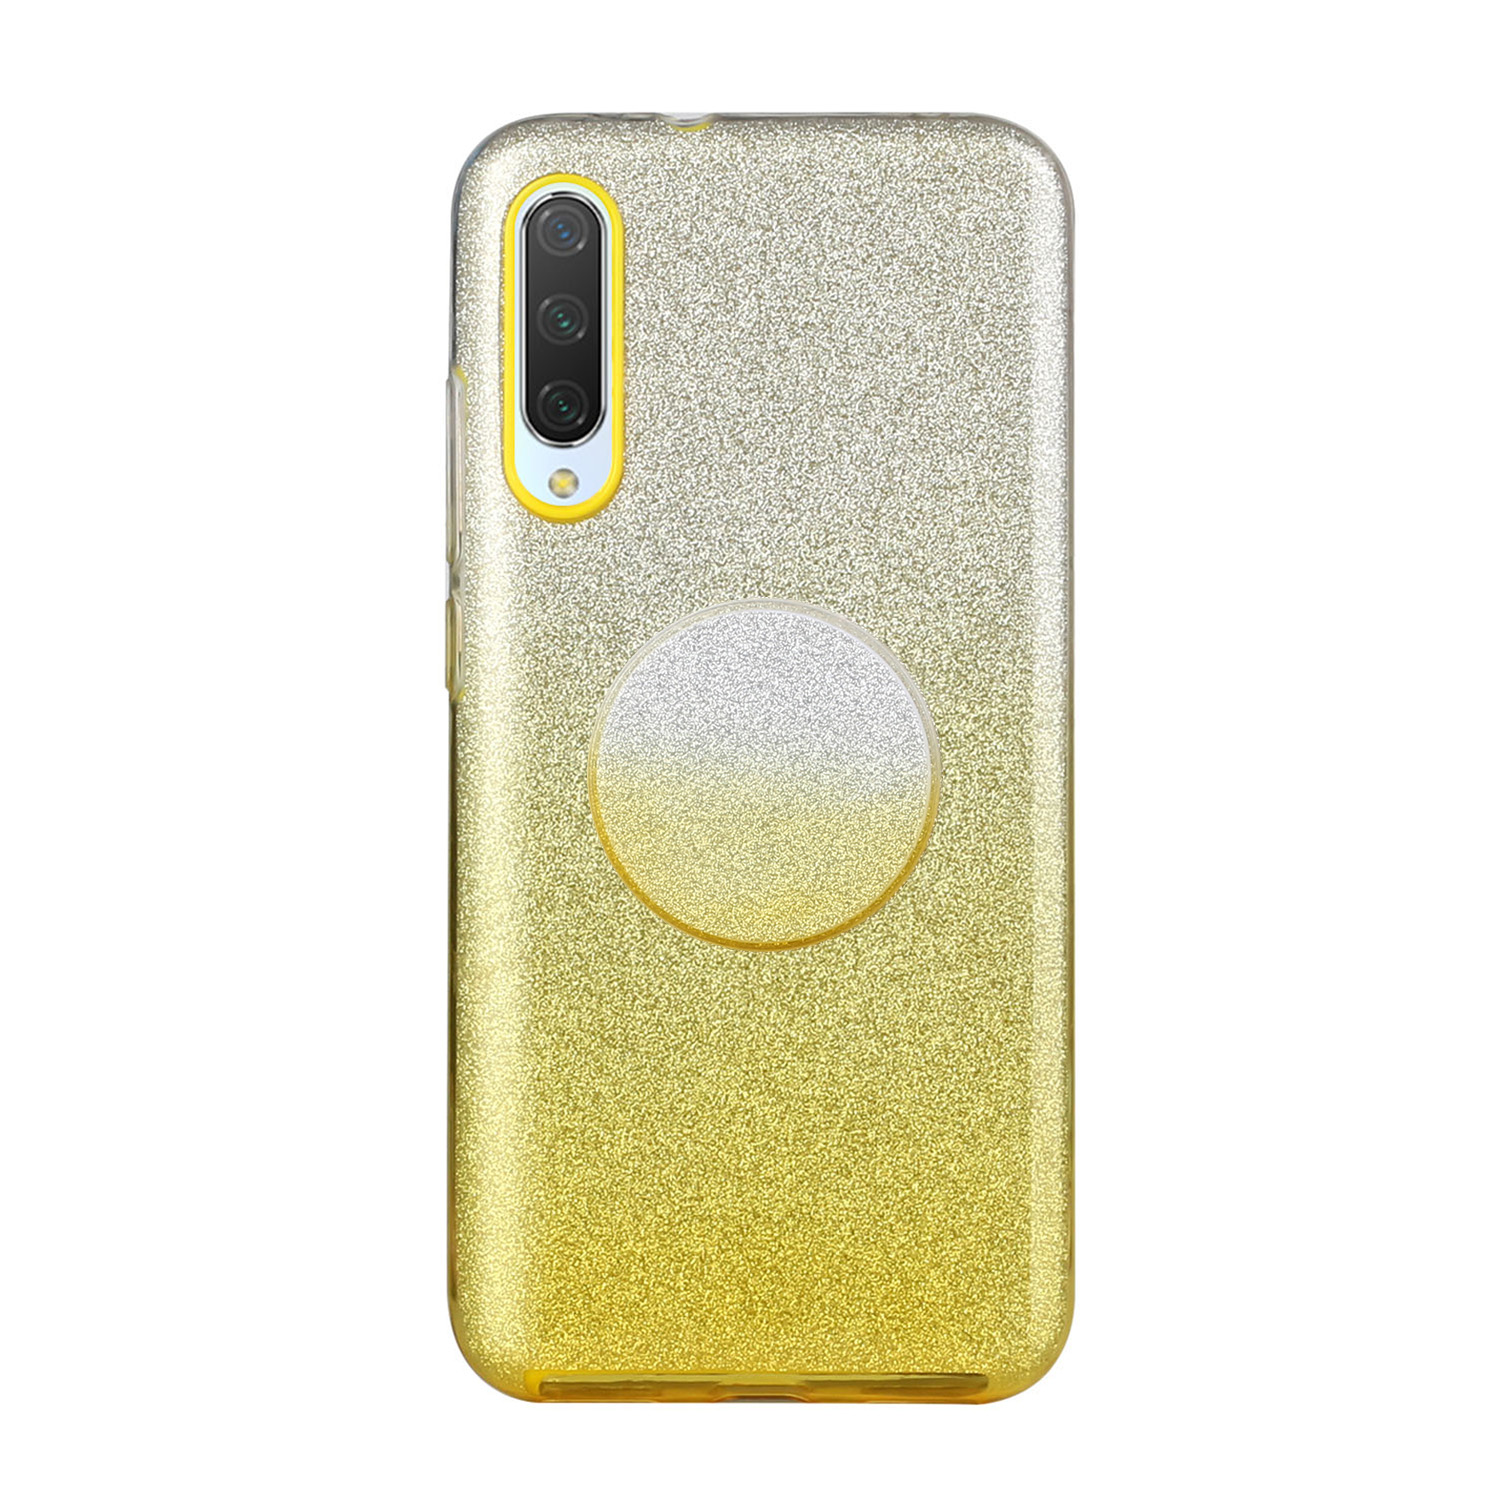 For Samsung A10/A50/A30S/A70/A20S Phone Case Gradient Color Glitter Powder Phone Cover with Airbag Bracket yellow